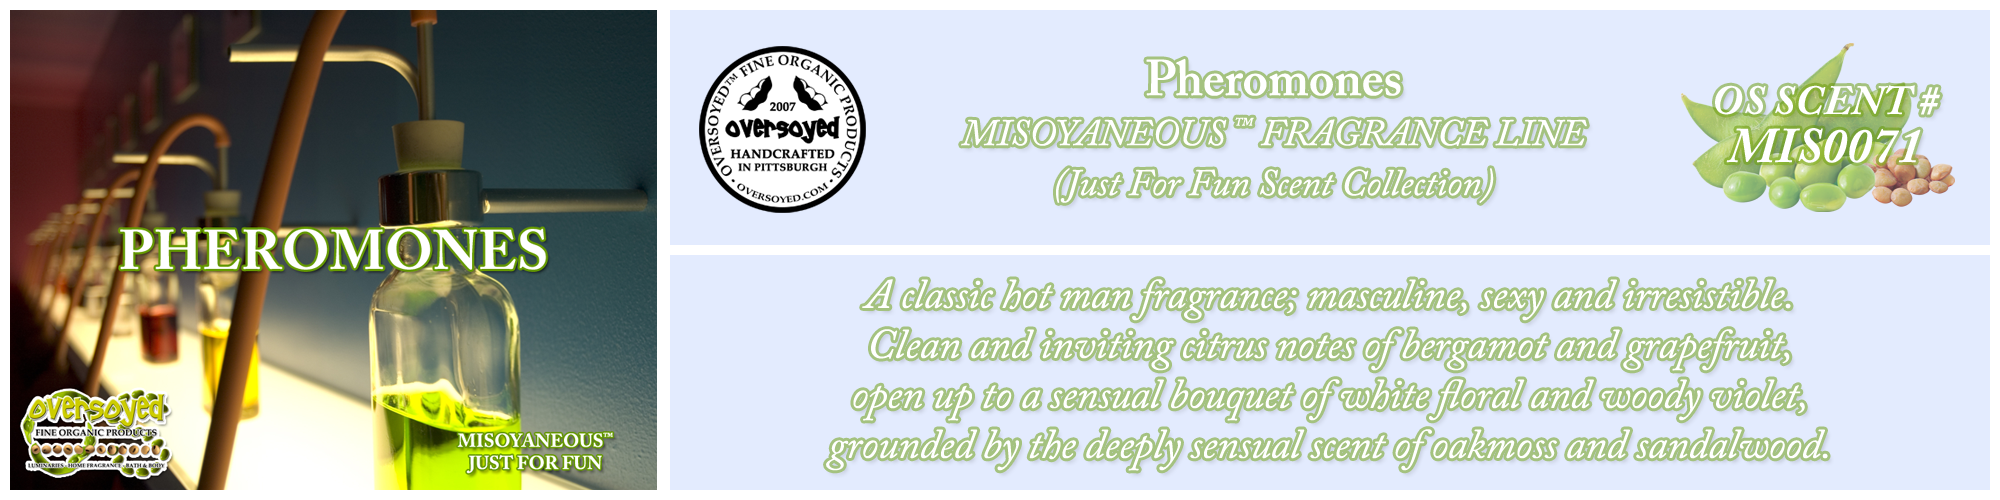 Pheromones Handcrafted Products Collection